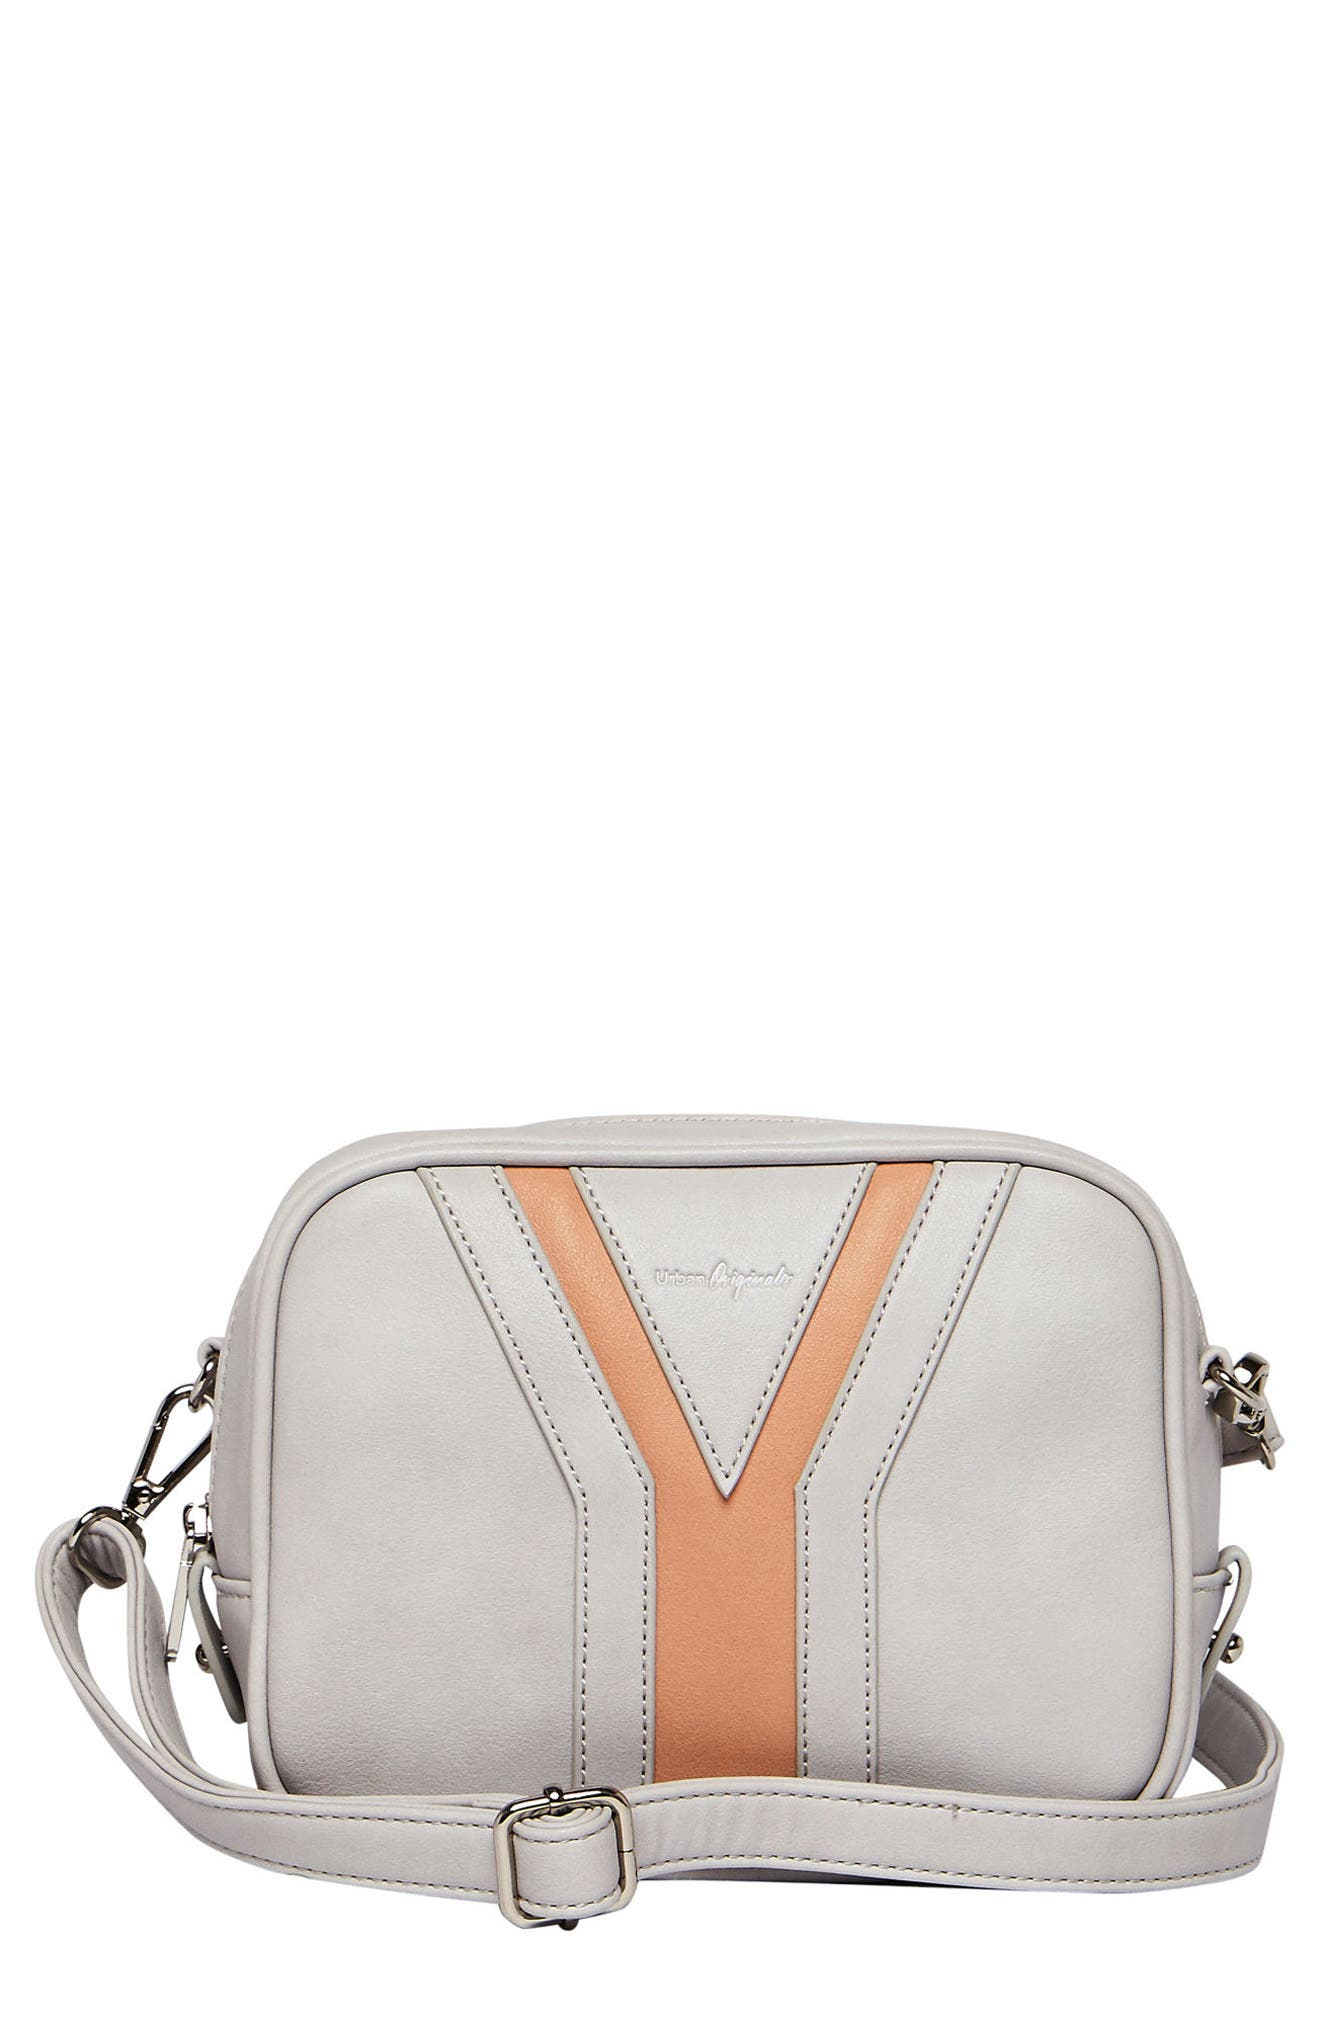 Urban Originals Late Night Vegan Leather Crossbody Bag